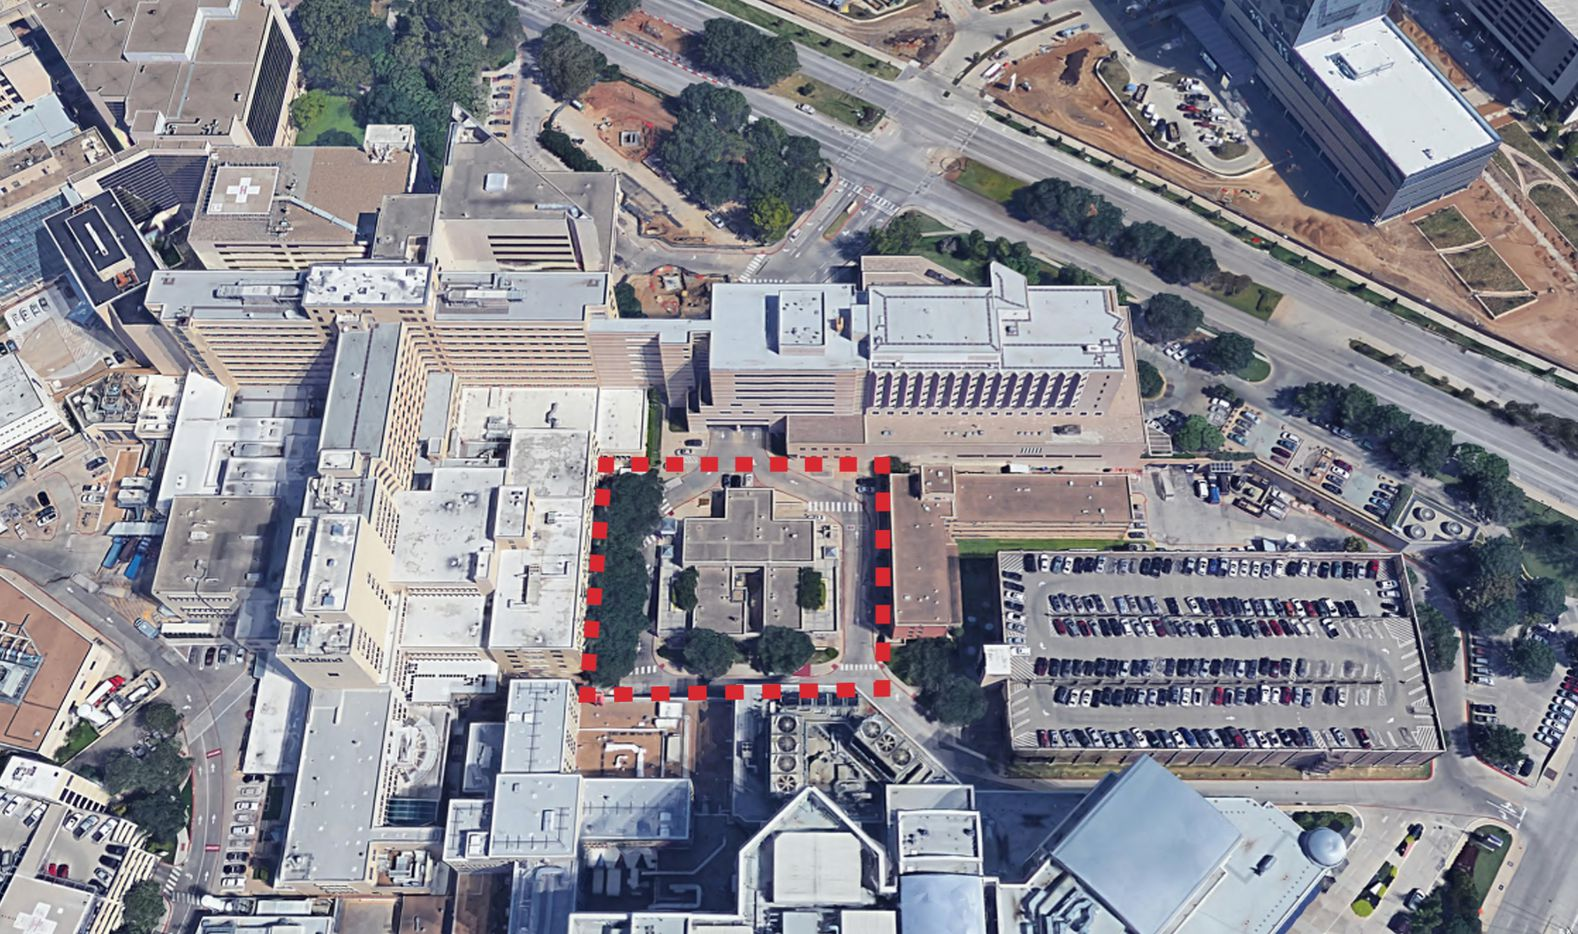 Small buildings at the center of the medical complex would be torn down for a new park area.